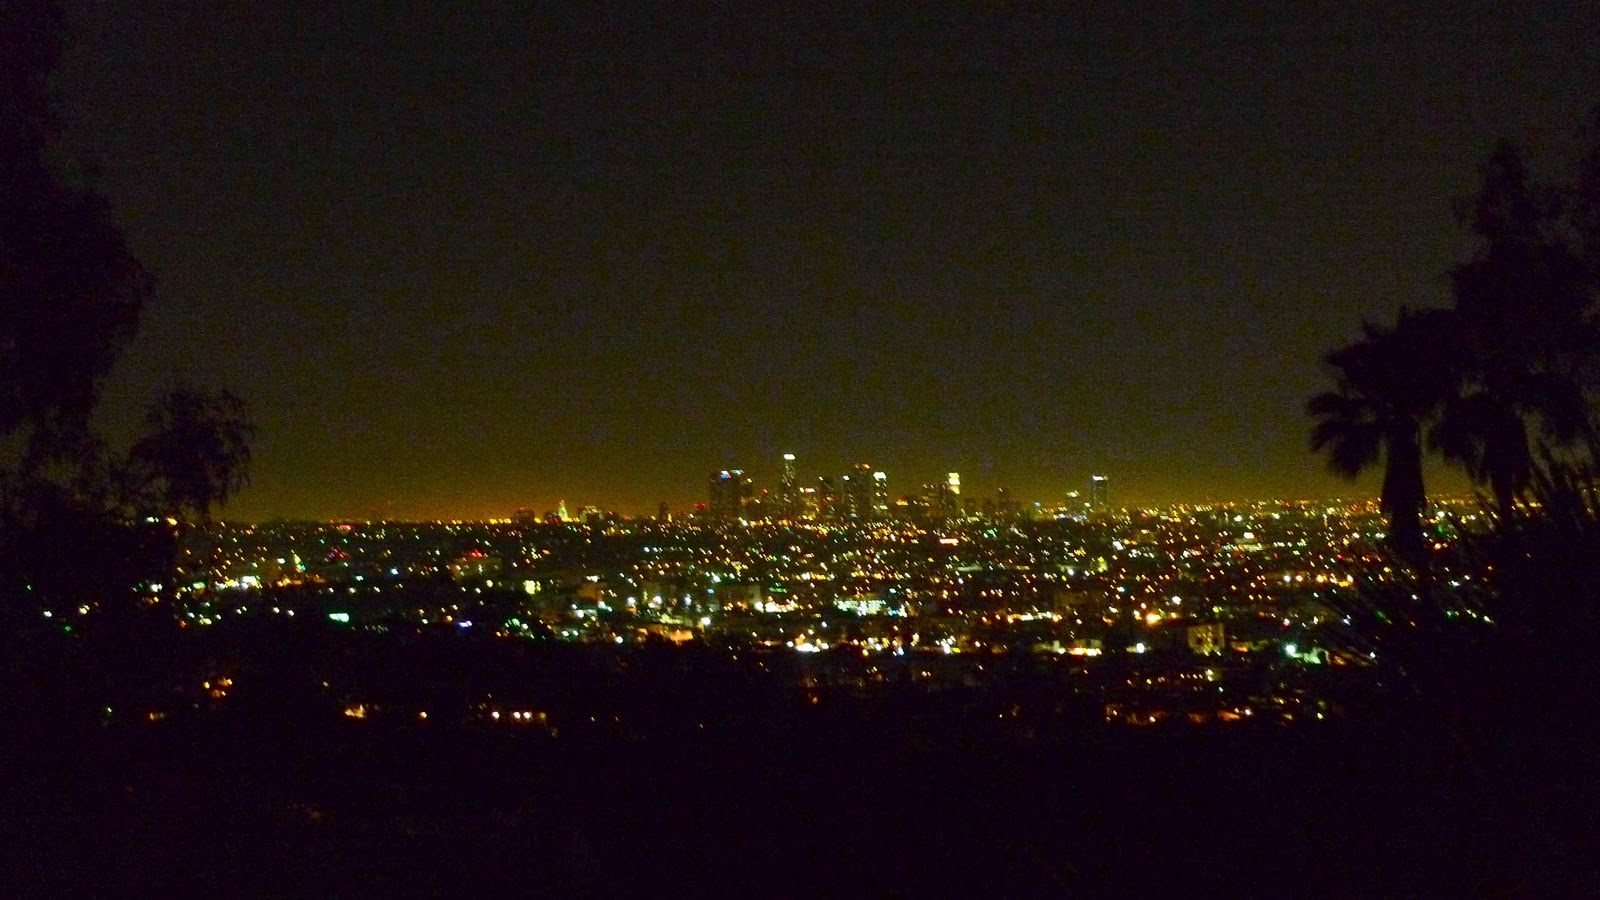 We Were So Close To The Hollywood Sign Too Bad My Camera Wasnt Good Enough Catch Such Beautiful Scenery But Regardless This Is Best Way End